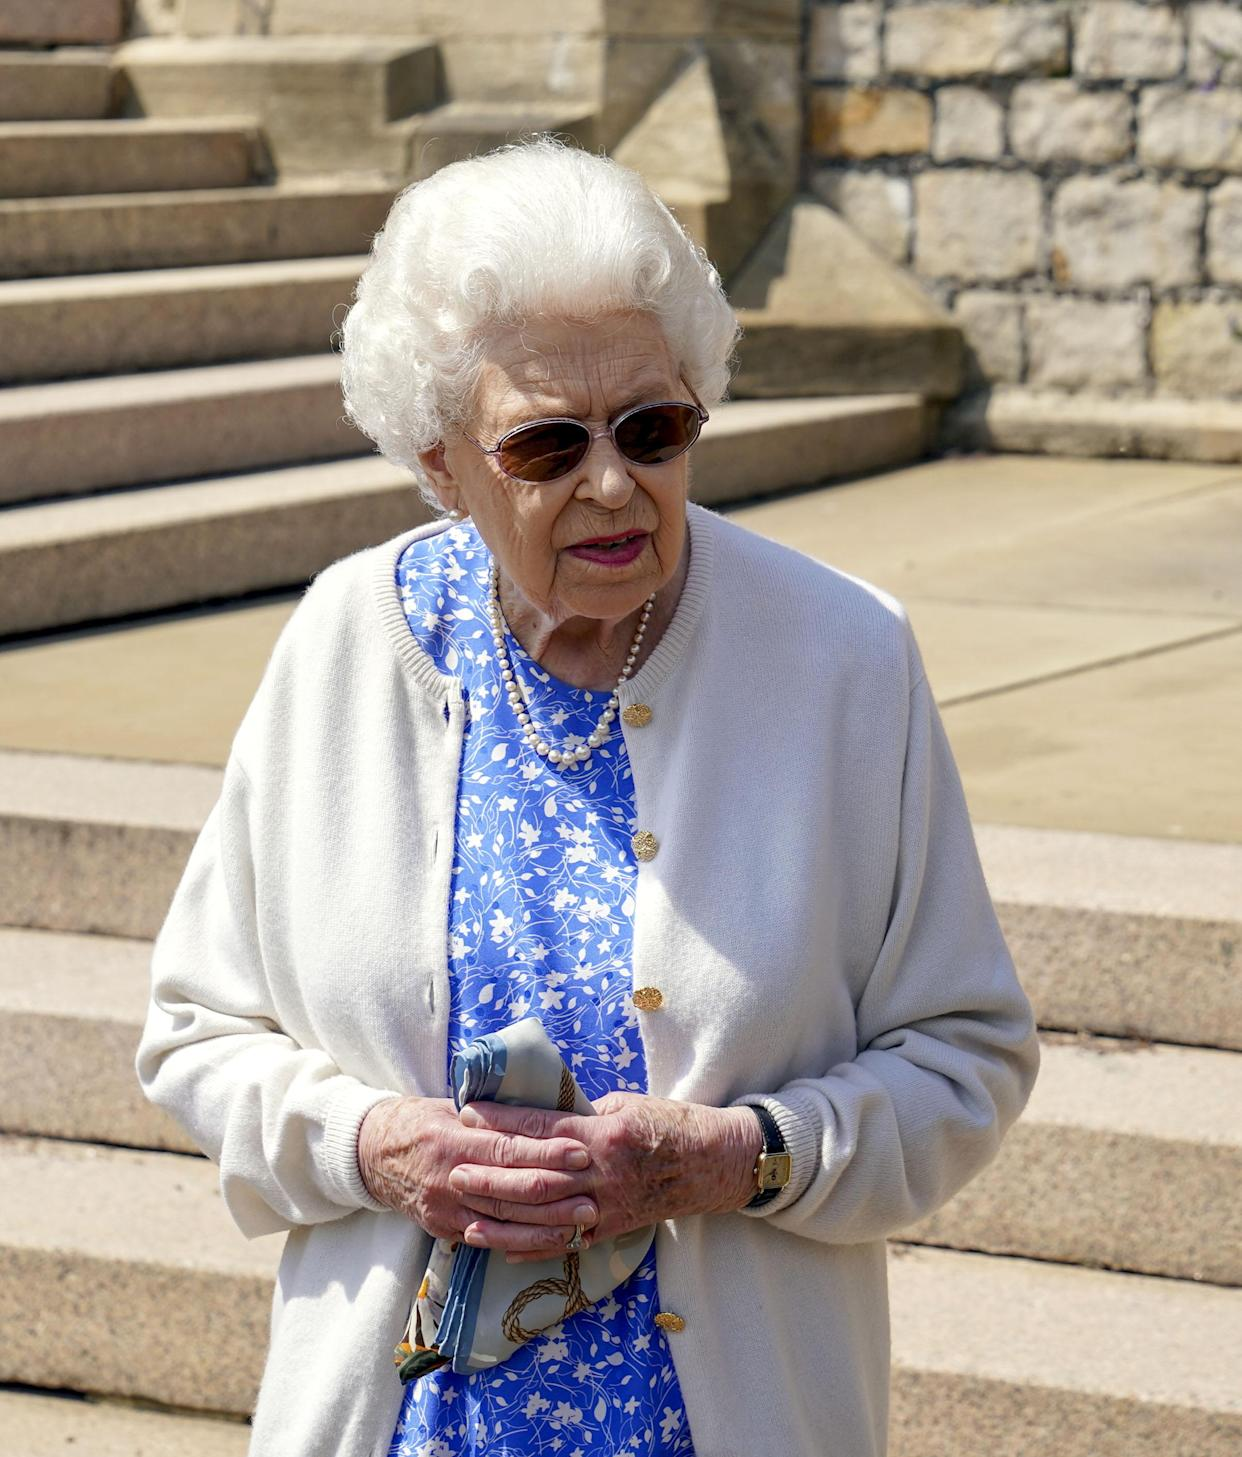 EMBARGOED TO 2200 WEDNESDAY JUNE 9 Queen Elizabeth II in the gardens of Windsor Castle, in Berkshire, where she received a Duke of Edinburgh rose, given to her by the Royal Horticultural Society. The newly bred deep pink commemorative rose from Harkness Roses has officially been named in memory of the Duke of Edinburgh. A royalty from the sale of each rose will go to The Duke of Edinburgh's Award Living Legacy Fund which will give more young people the opportunity to take part in the Duke of Edinburgh Award. Picture date: Wednesday June 2, 2021. The Duke, who died in April this year, would have celebrated his 100th birthday on June 10th.